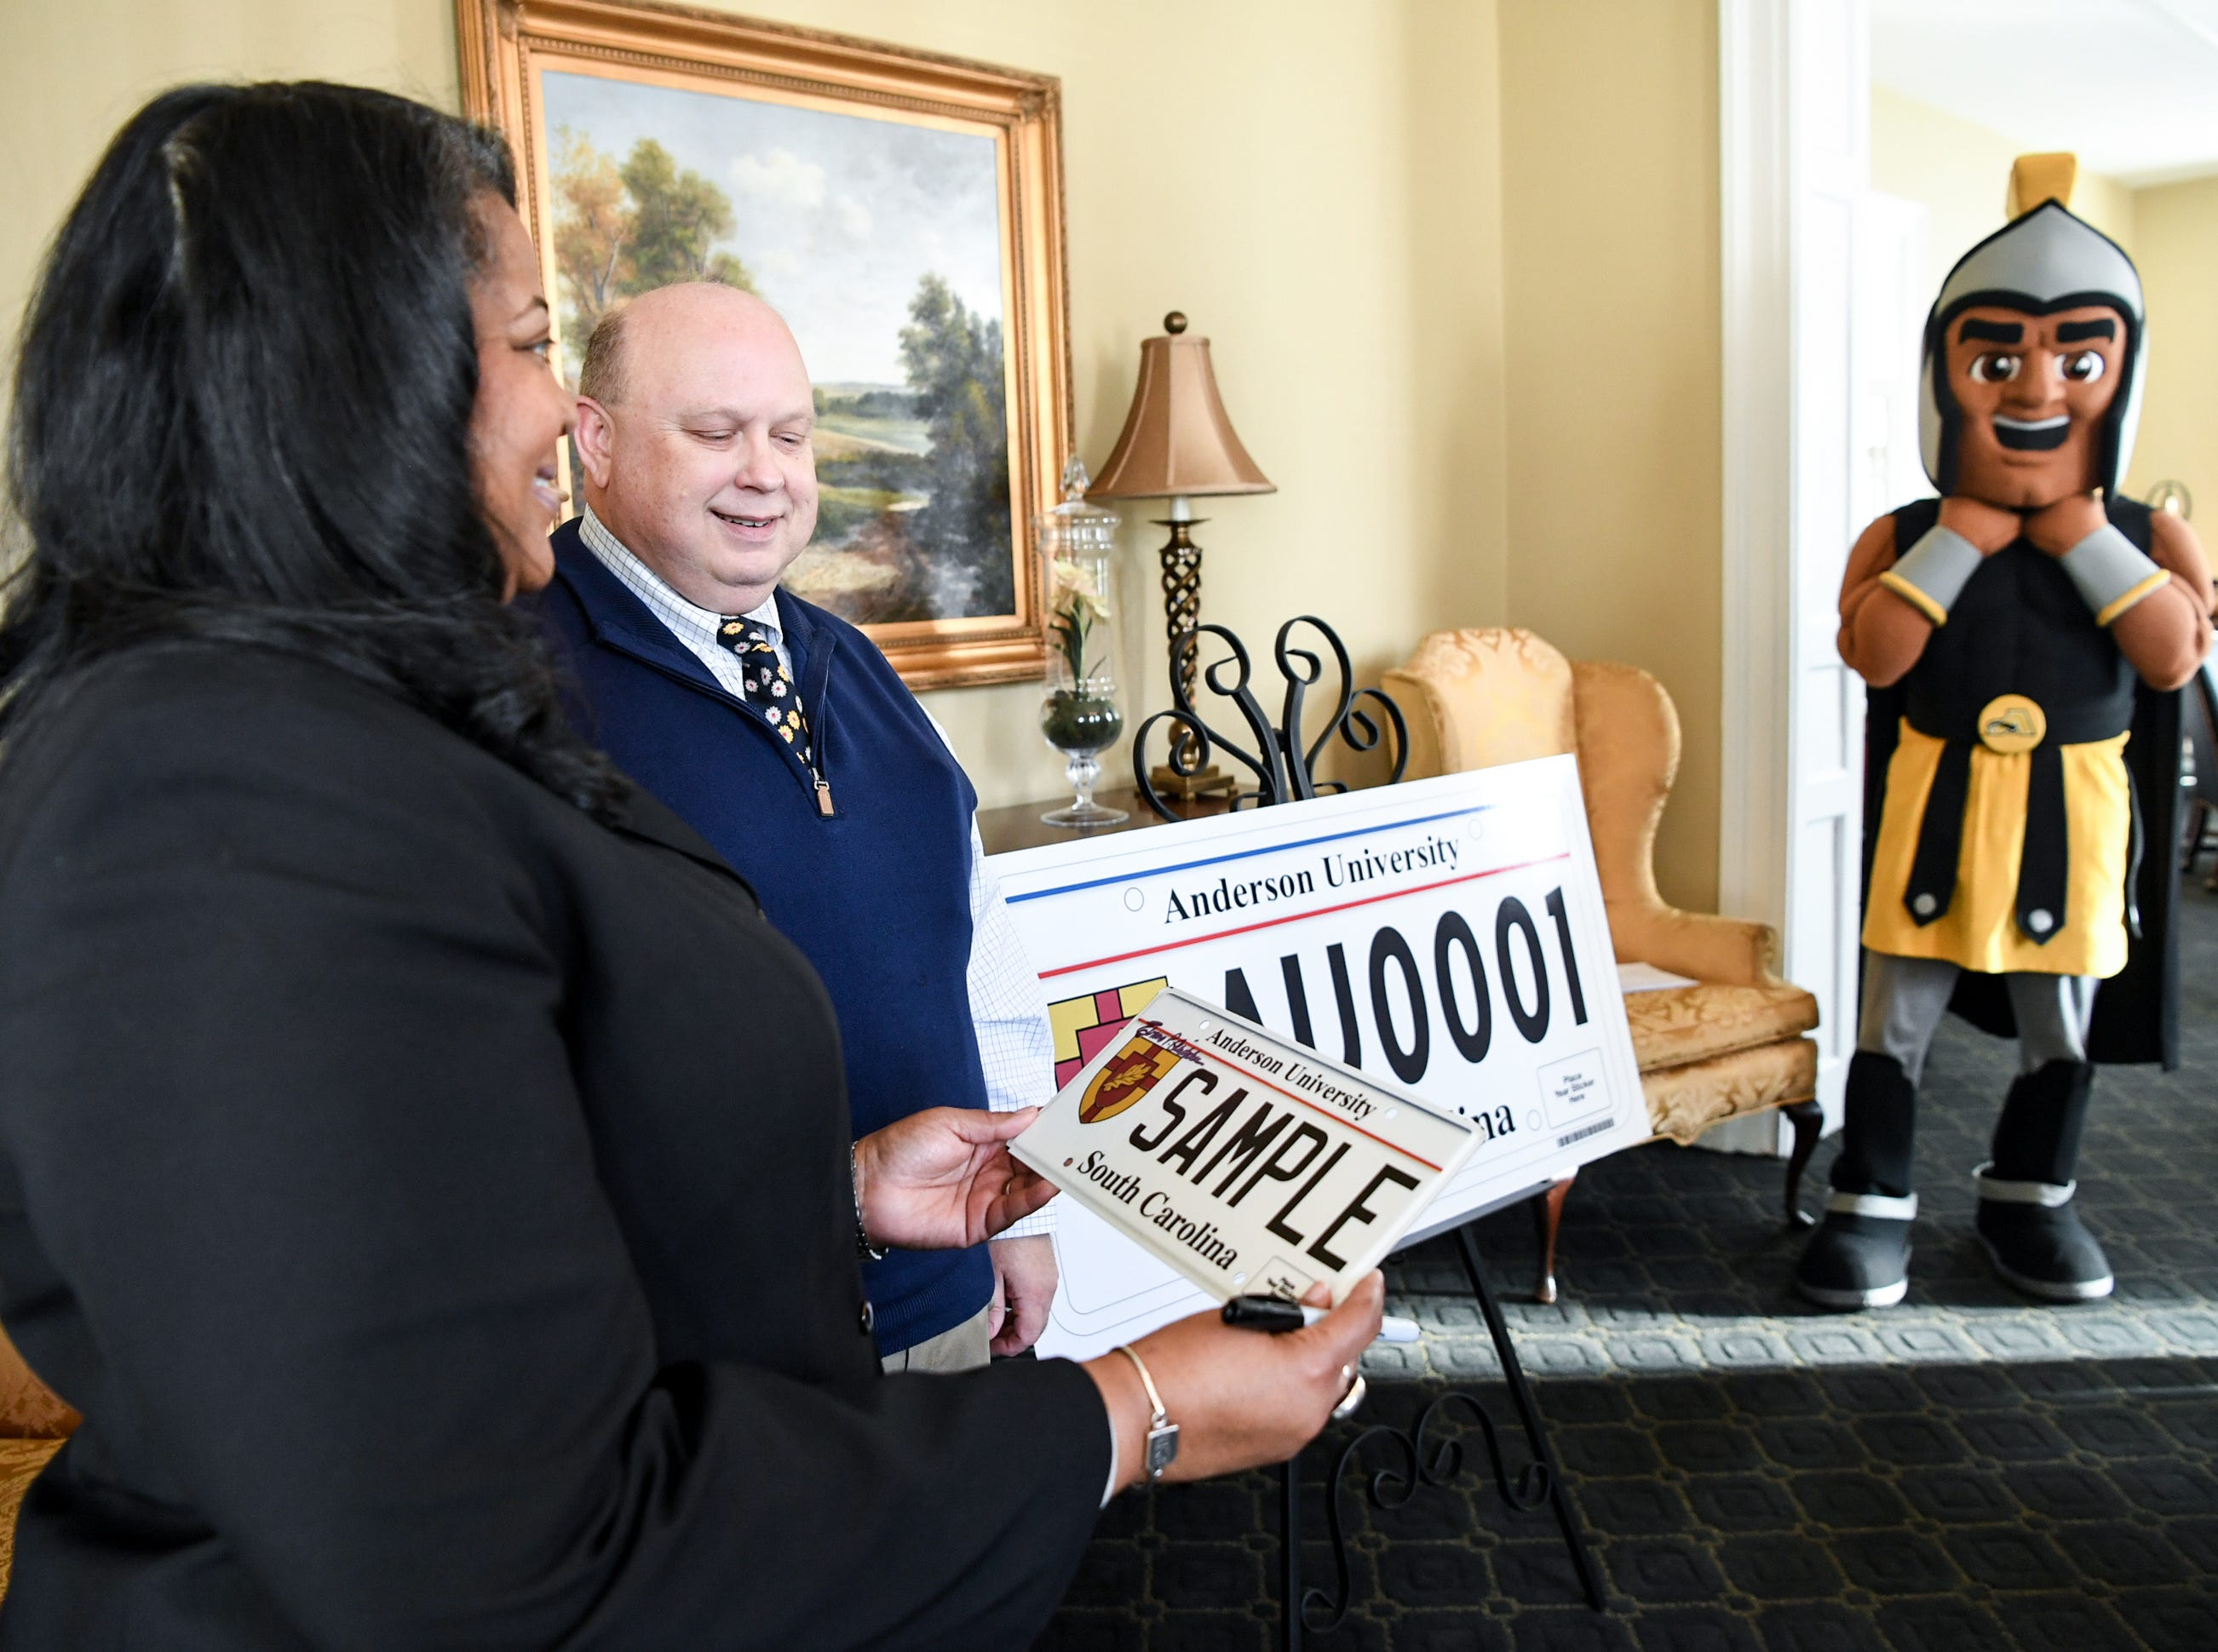 Hermena Perkins-Brown, left, plate office director of the South Carolina Department of Motor Vehicles, shows President Evans Whitaker of Anderson University and other officials a new personalized license plate during a press conference at the campus administration building in Anderson Friday morning. The University plate, along with Clemson University and the University of South Carolina, are the only college or university plates available to personalize, said Perkins-Brown. The Anderson University plates can be applied for starting Monday, January 28, 2019 in person, not online, for $100 and an added fee if personalizing.